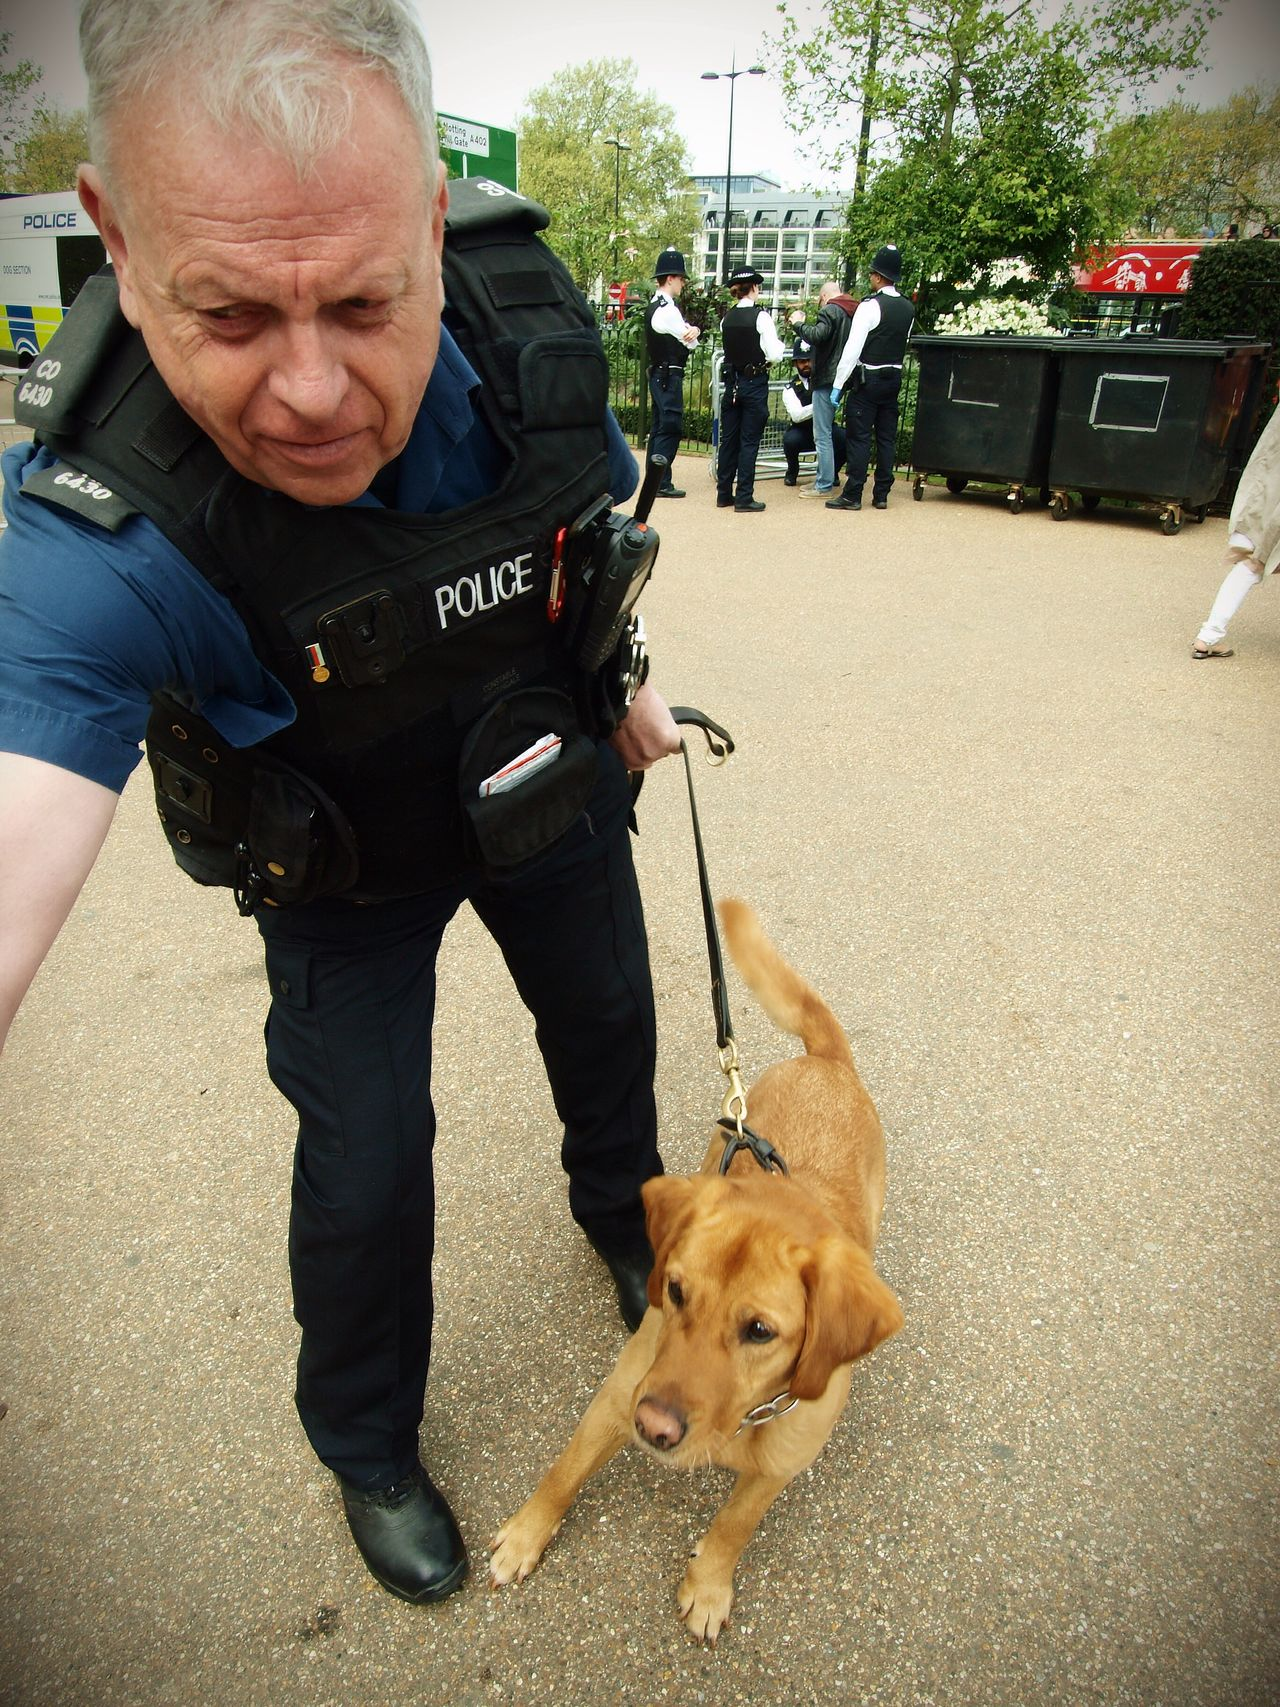 PC a Nightingale and Millie the drug sniffer dog conducting searches at the London 420 Rally to legalise Canabis 20-04-2017 Hyde Park Policing Olympus Stevesevilempire Drug Sniffer Dogs Photojournalism 420 Rally London Lifestyle Canabisculture Metropolitan Police Canabis Canabbis London News Zuiko Steve Merrick London Dog